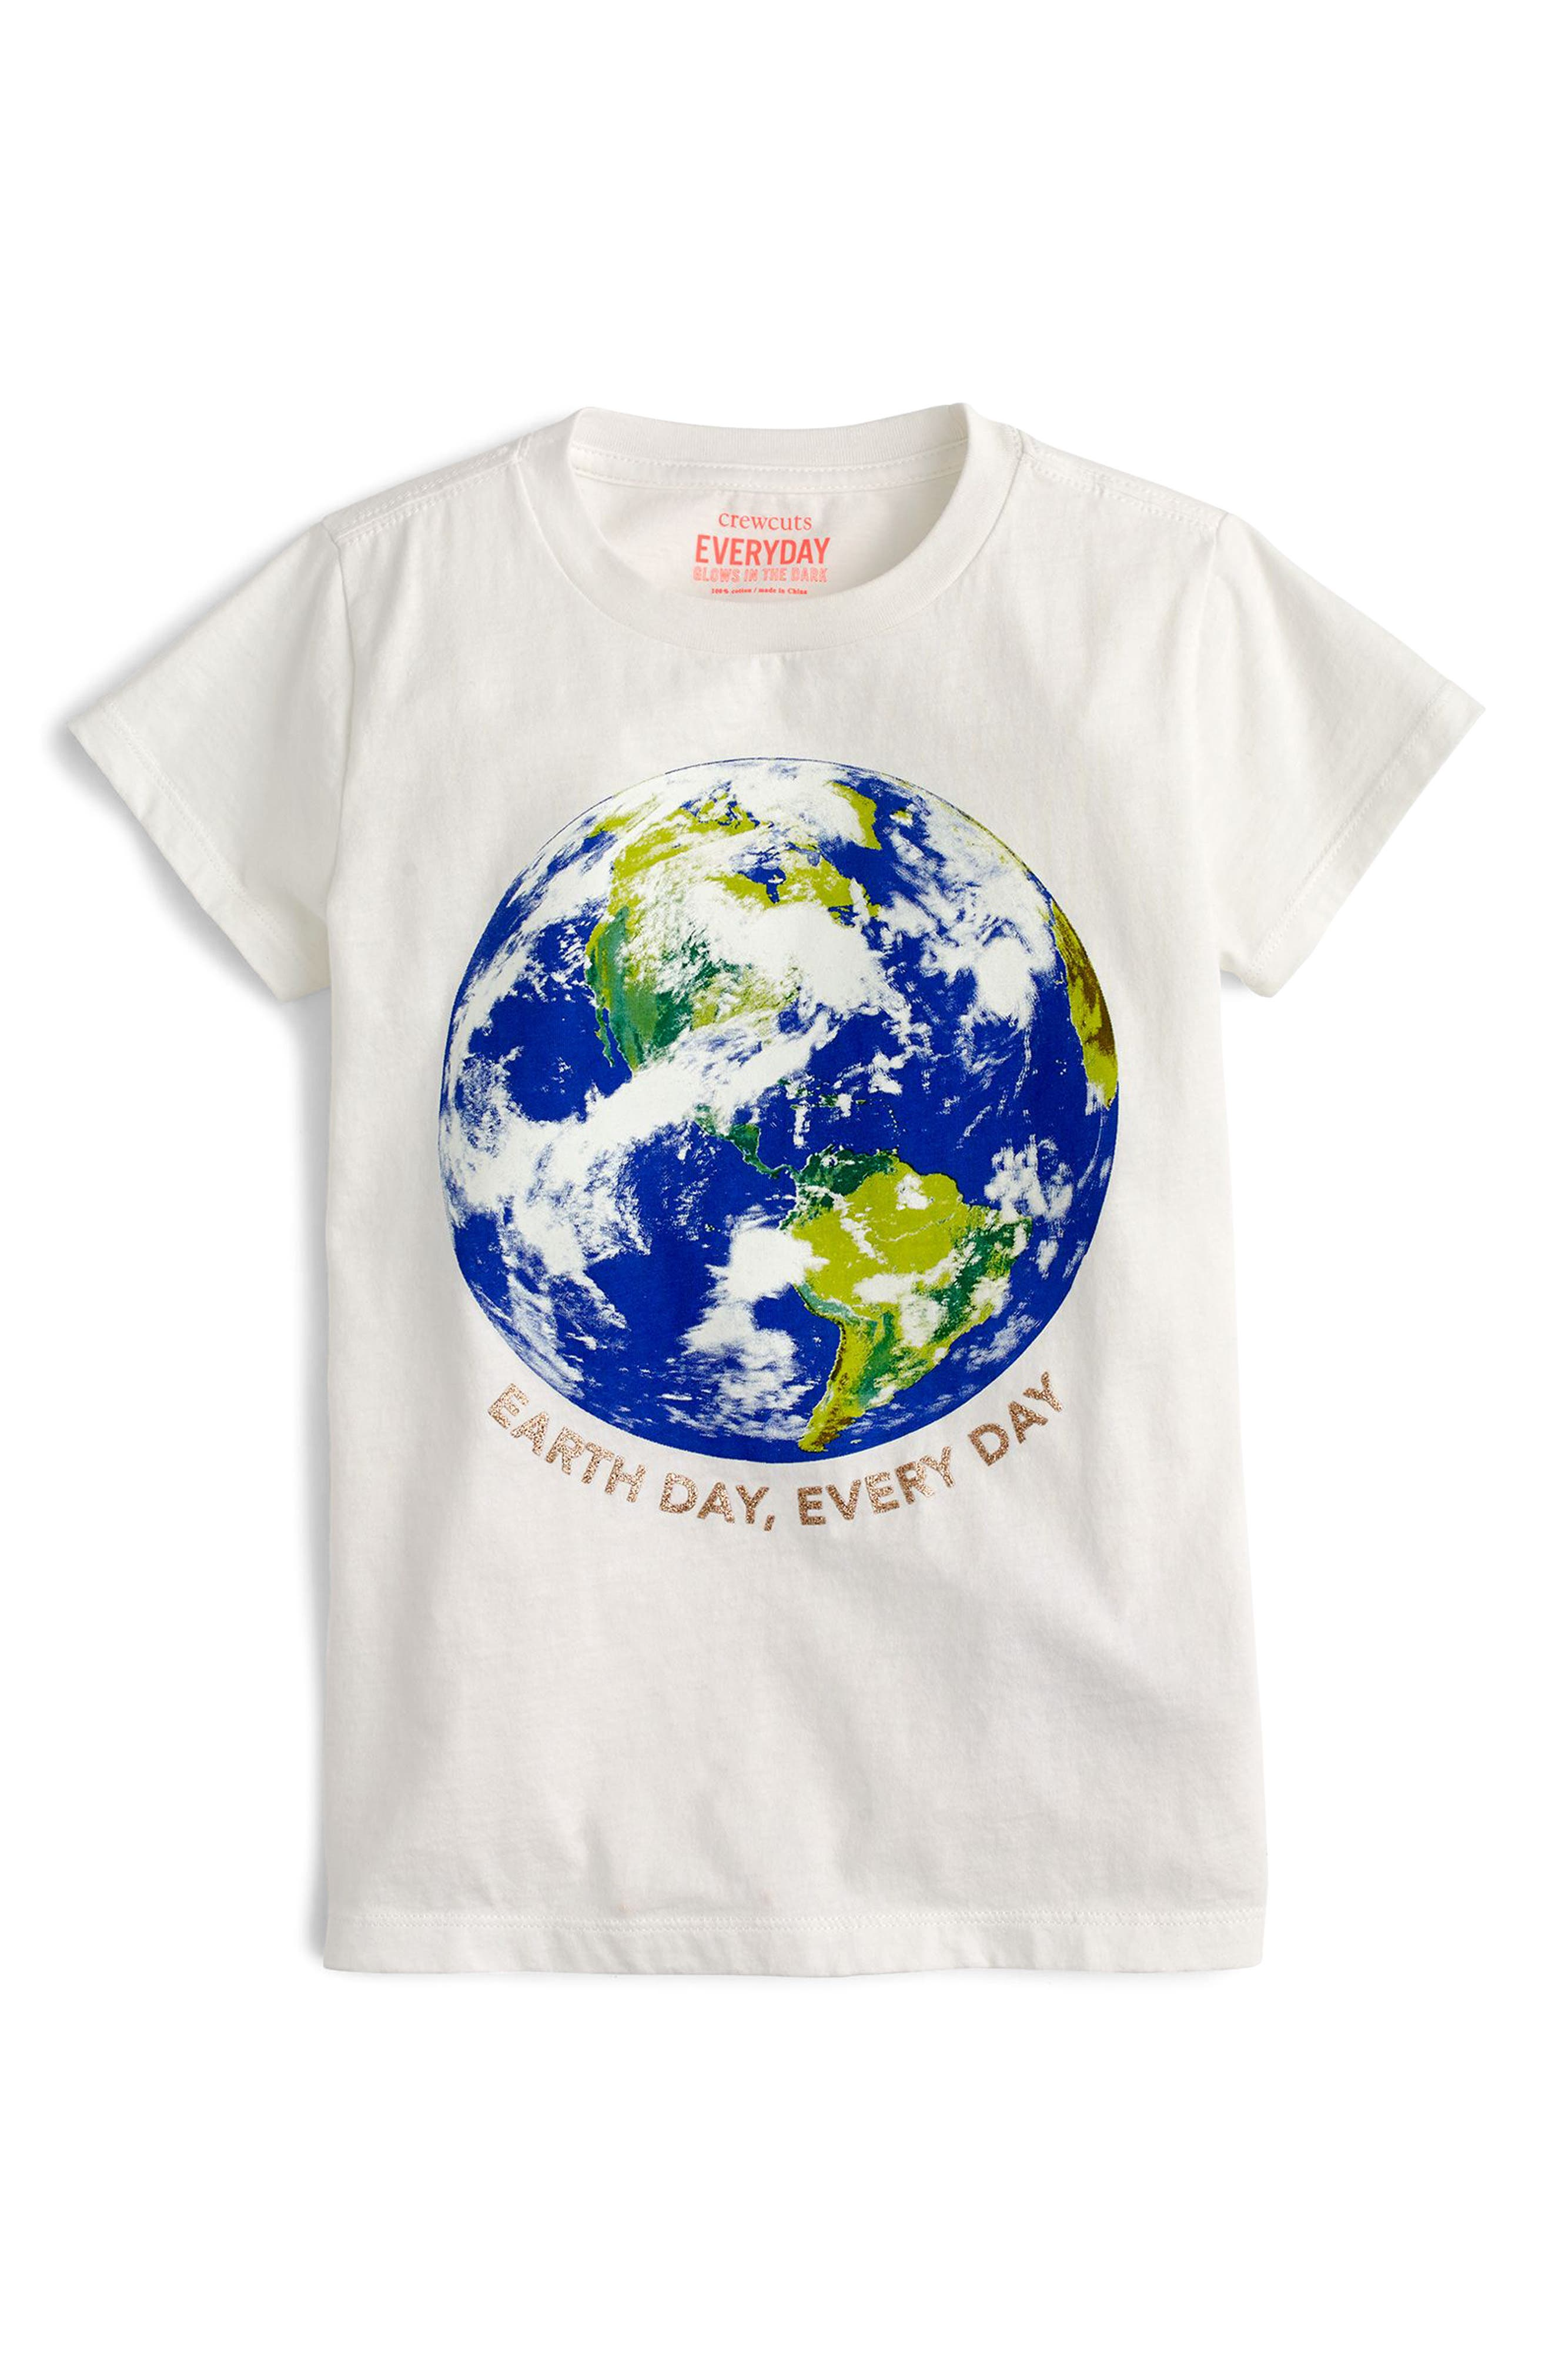 crewcuts by J.Crew Earth Day Every Day Tee (Toddler Girls, Little Girls & Big Girls)